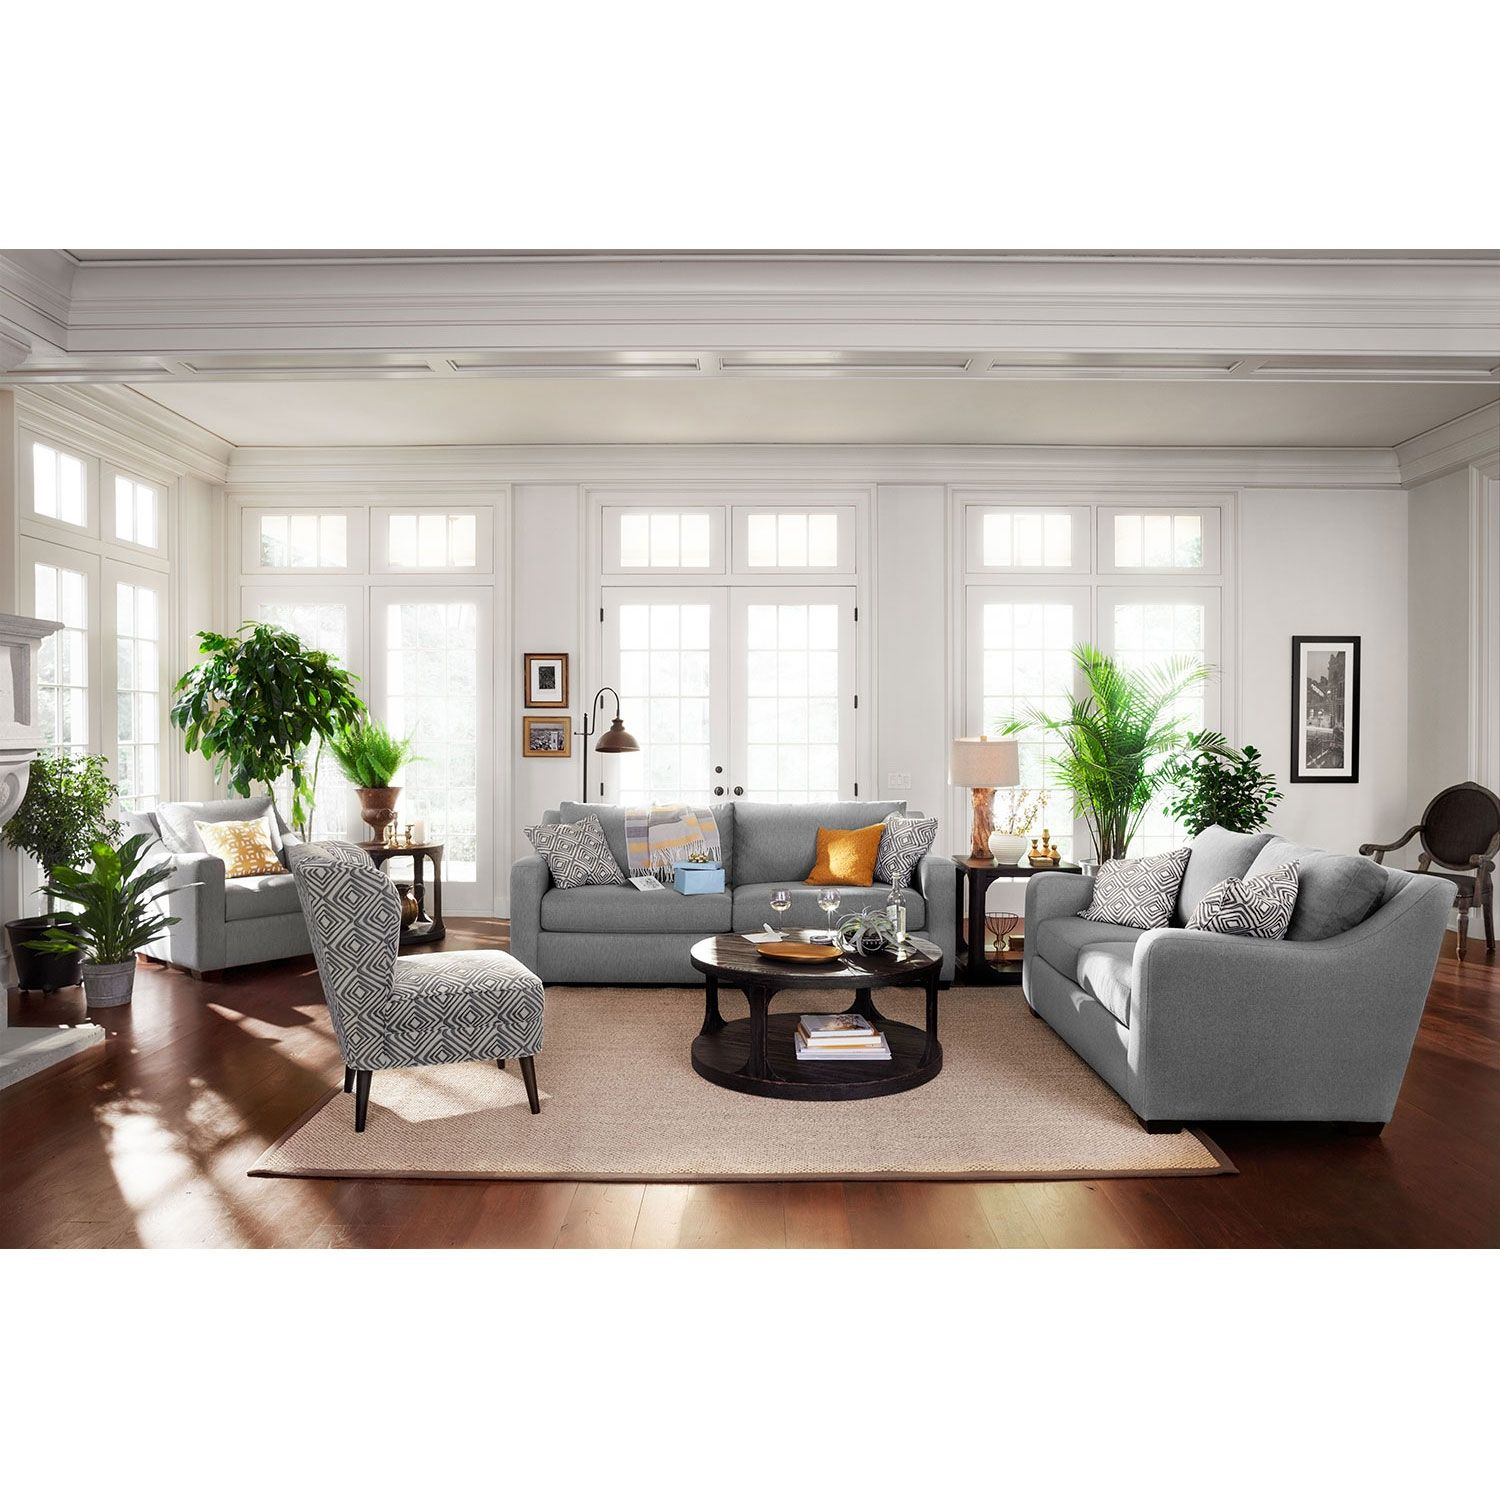 Graceful Gray Versatile gray color and classic design bine in